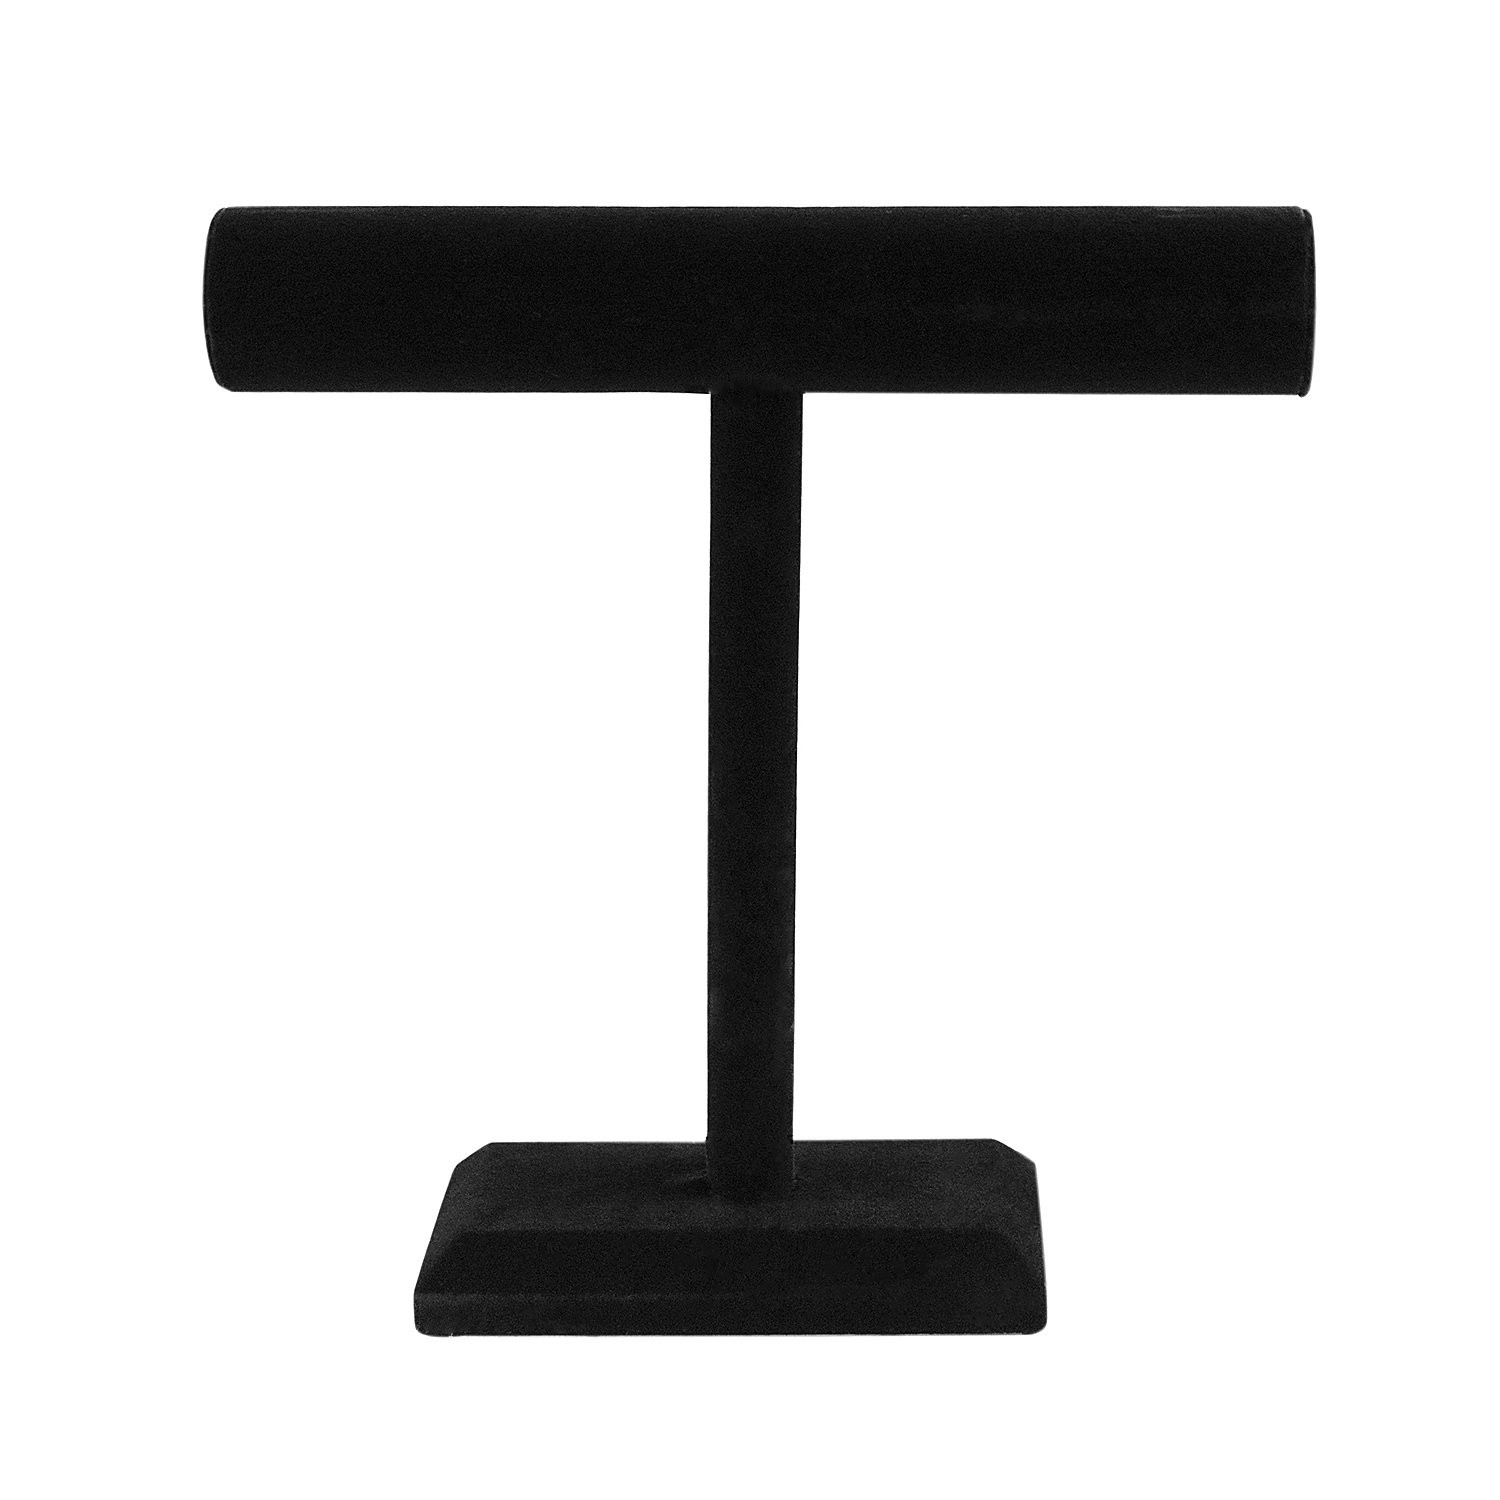 NEW Black Velvet Necklace T-Bar Jewelry Display Stand ! Select Jewelry Display AX-AY-ABHI-13622